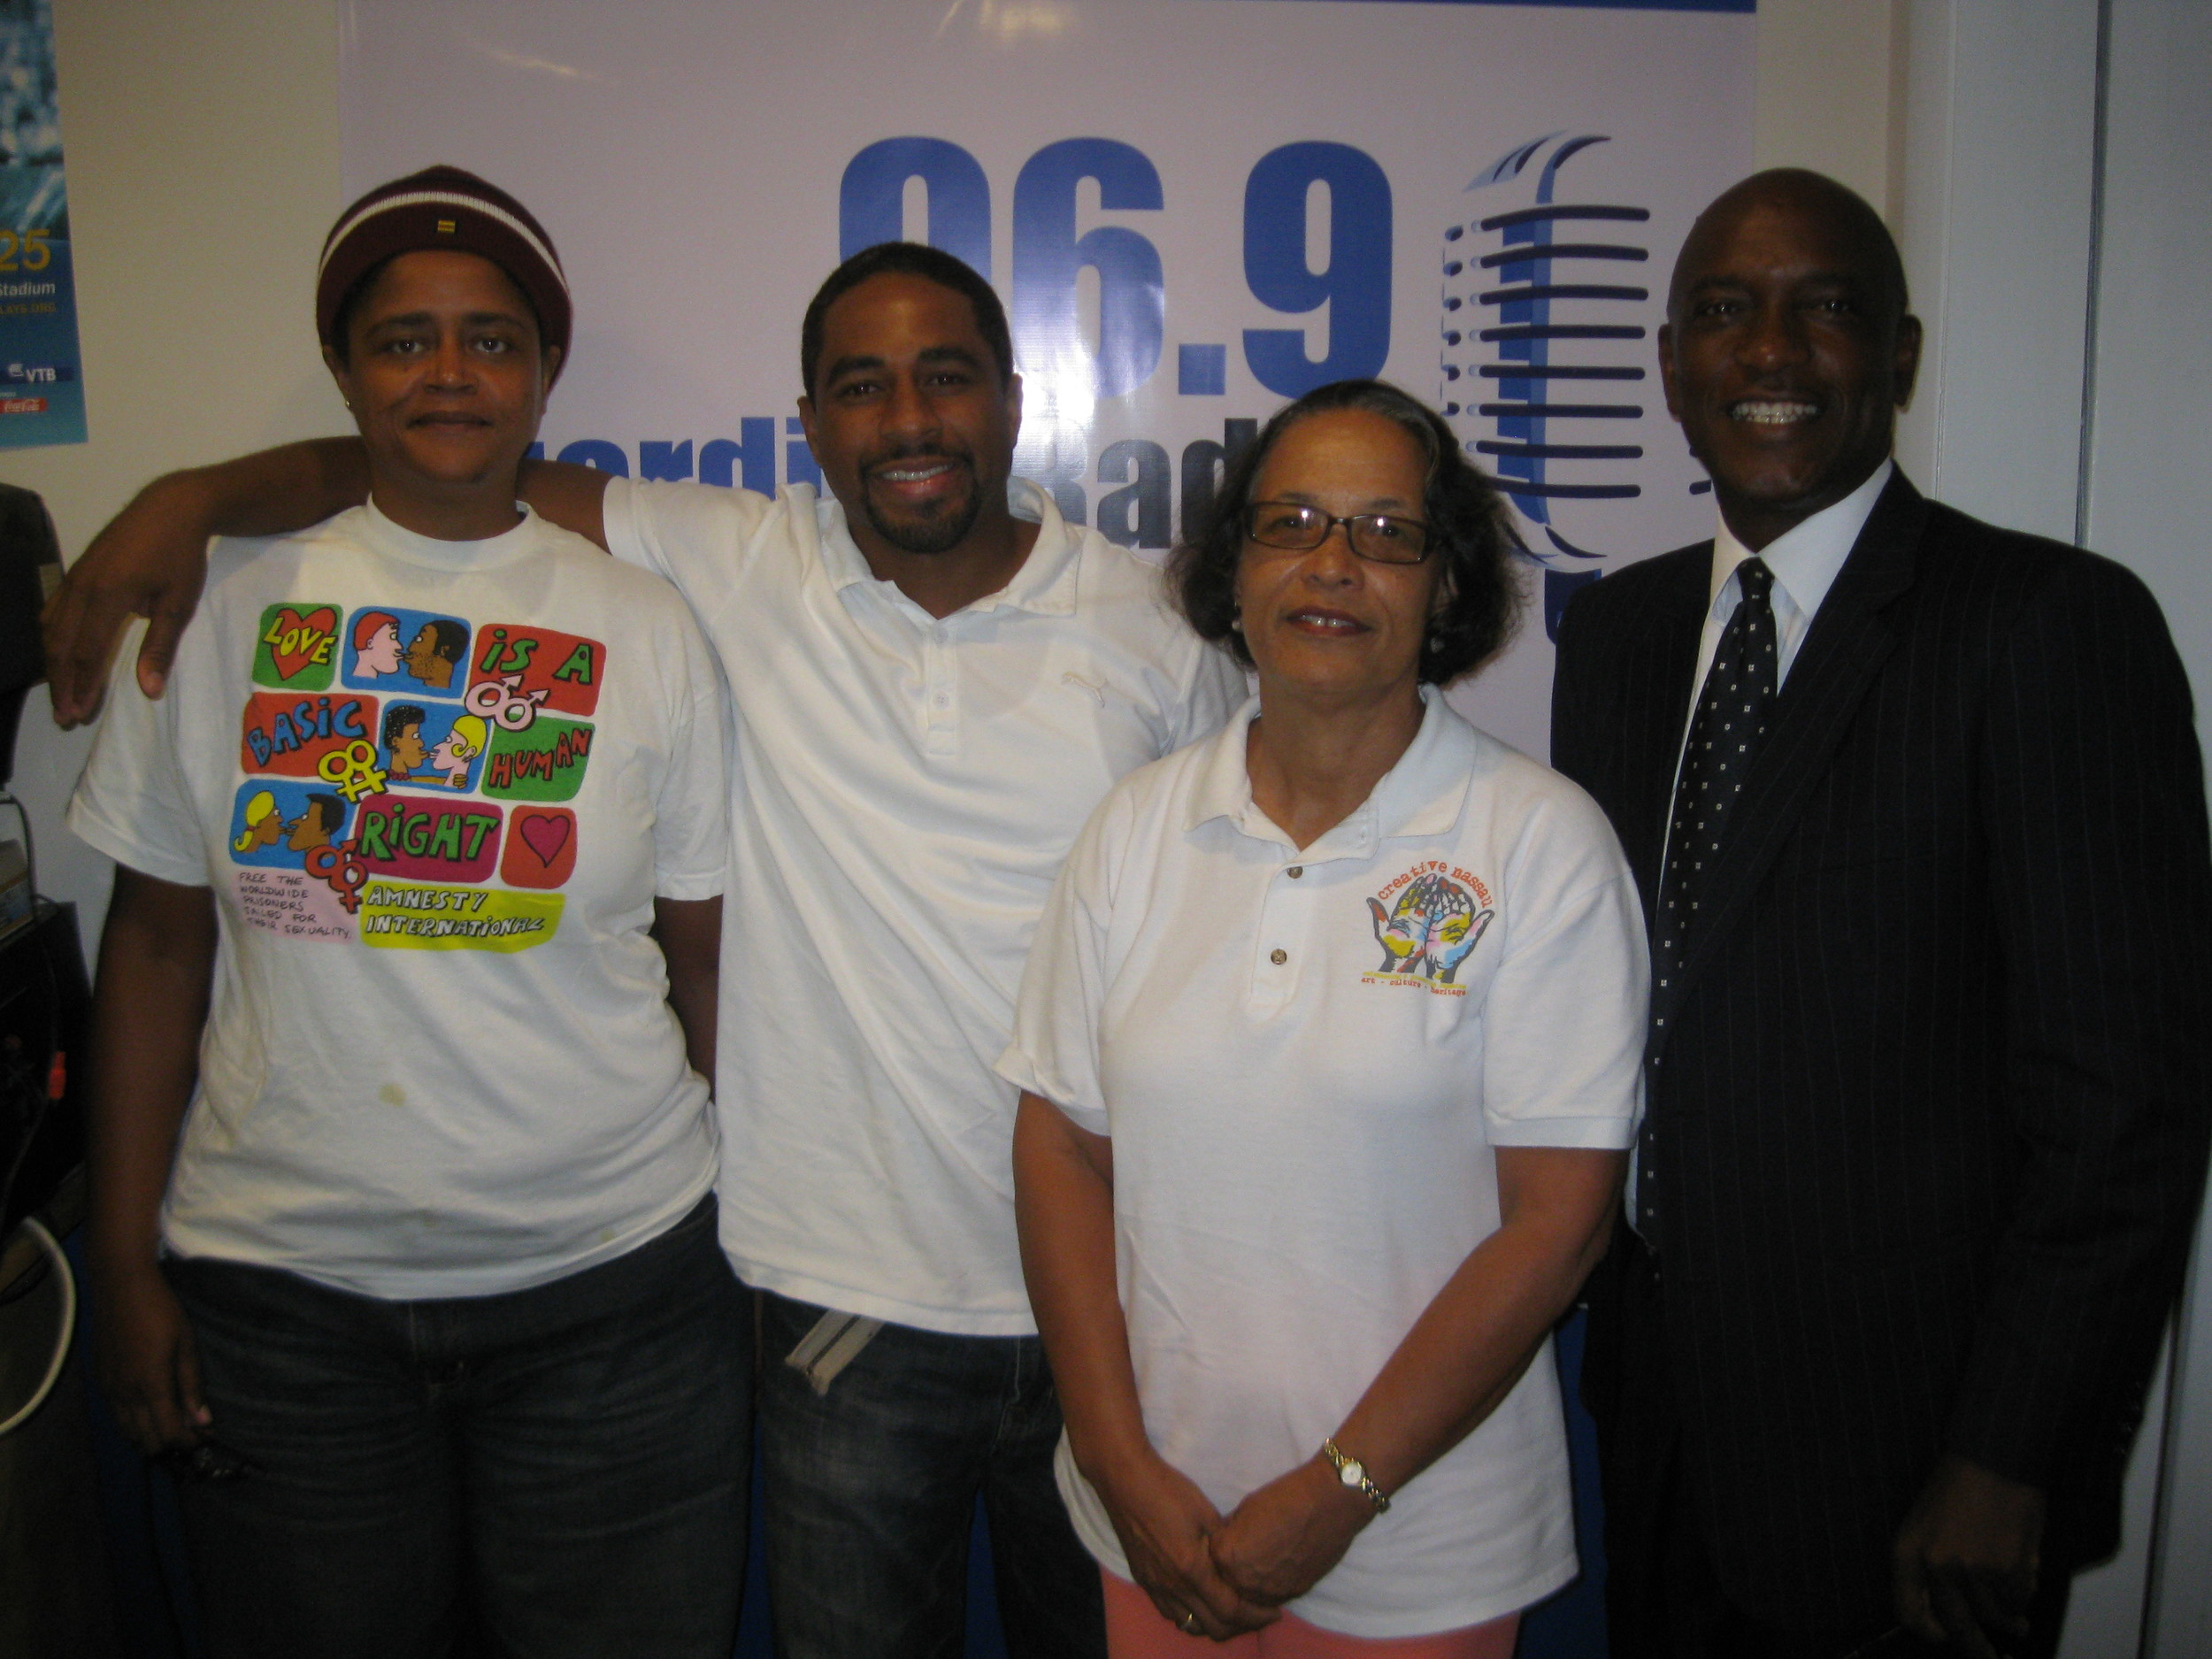 Radio Host Lester Cox (right) and co-host, Erin Greene (left) with guests, Matthew Wildgoose and Pam Burnside